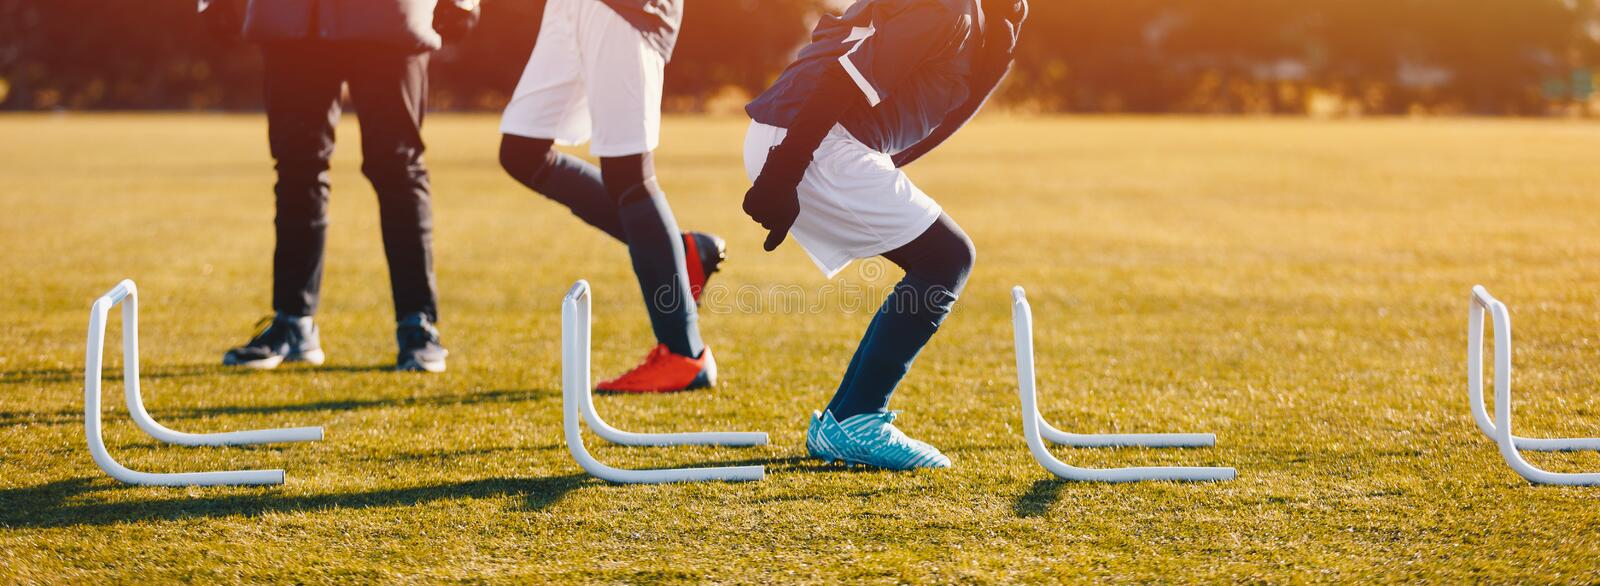 Winter Football Soccer Training Session with Hurdles. Athlete Player Practice Hurdle Jump stock photography